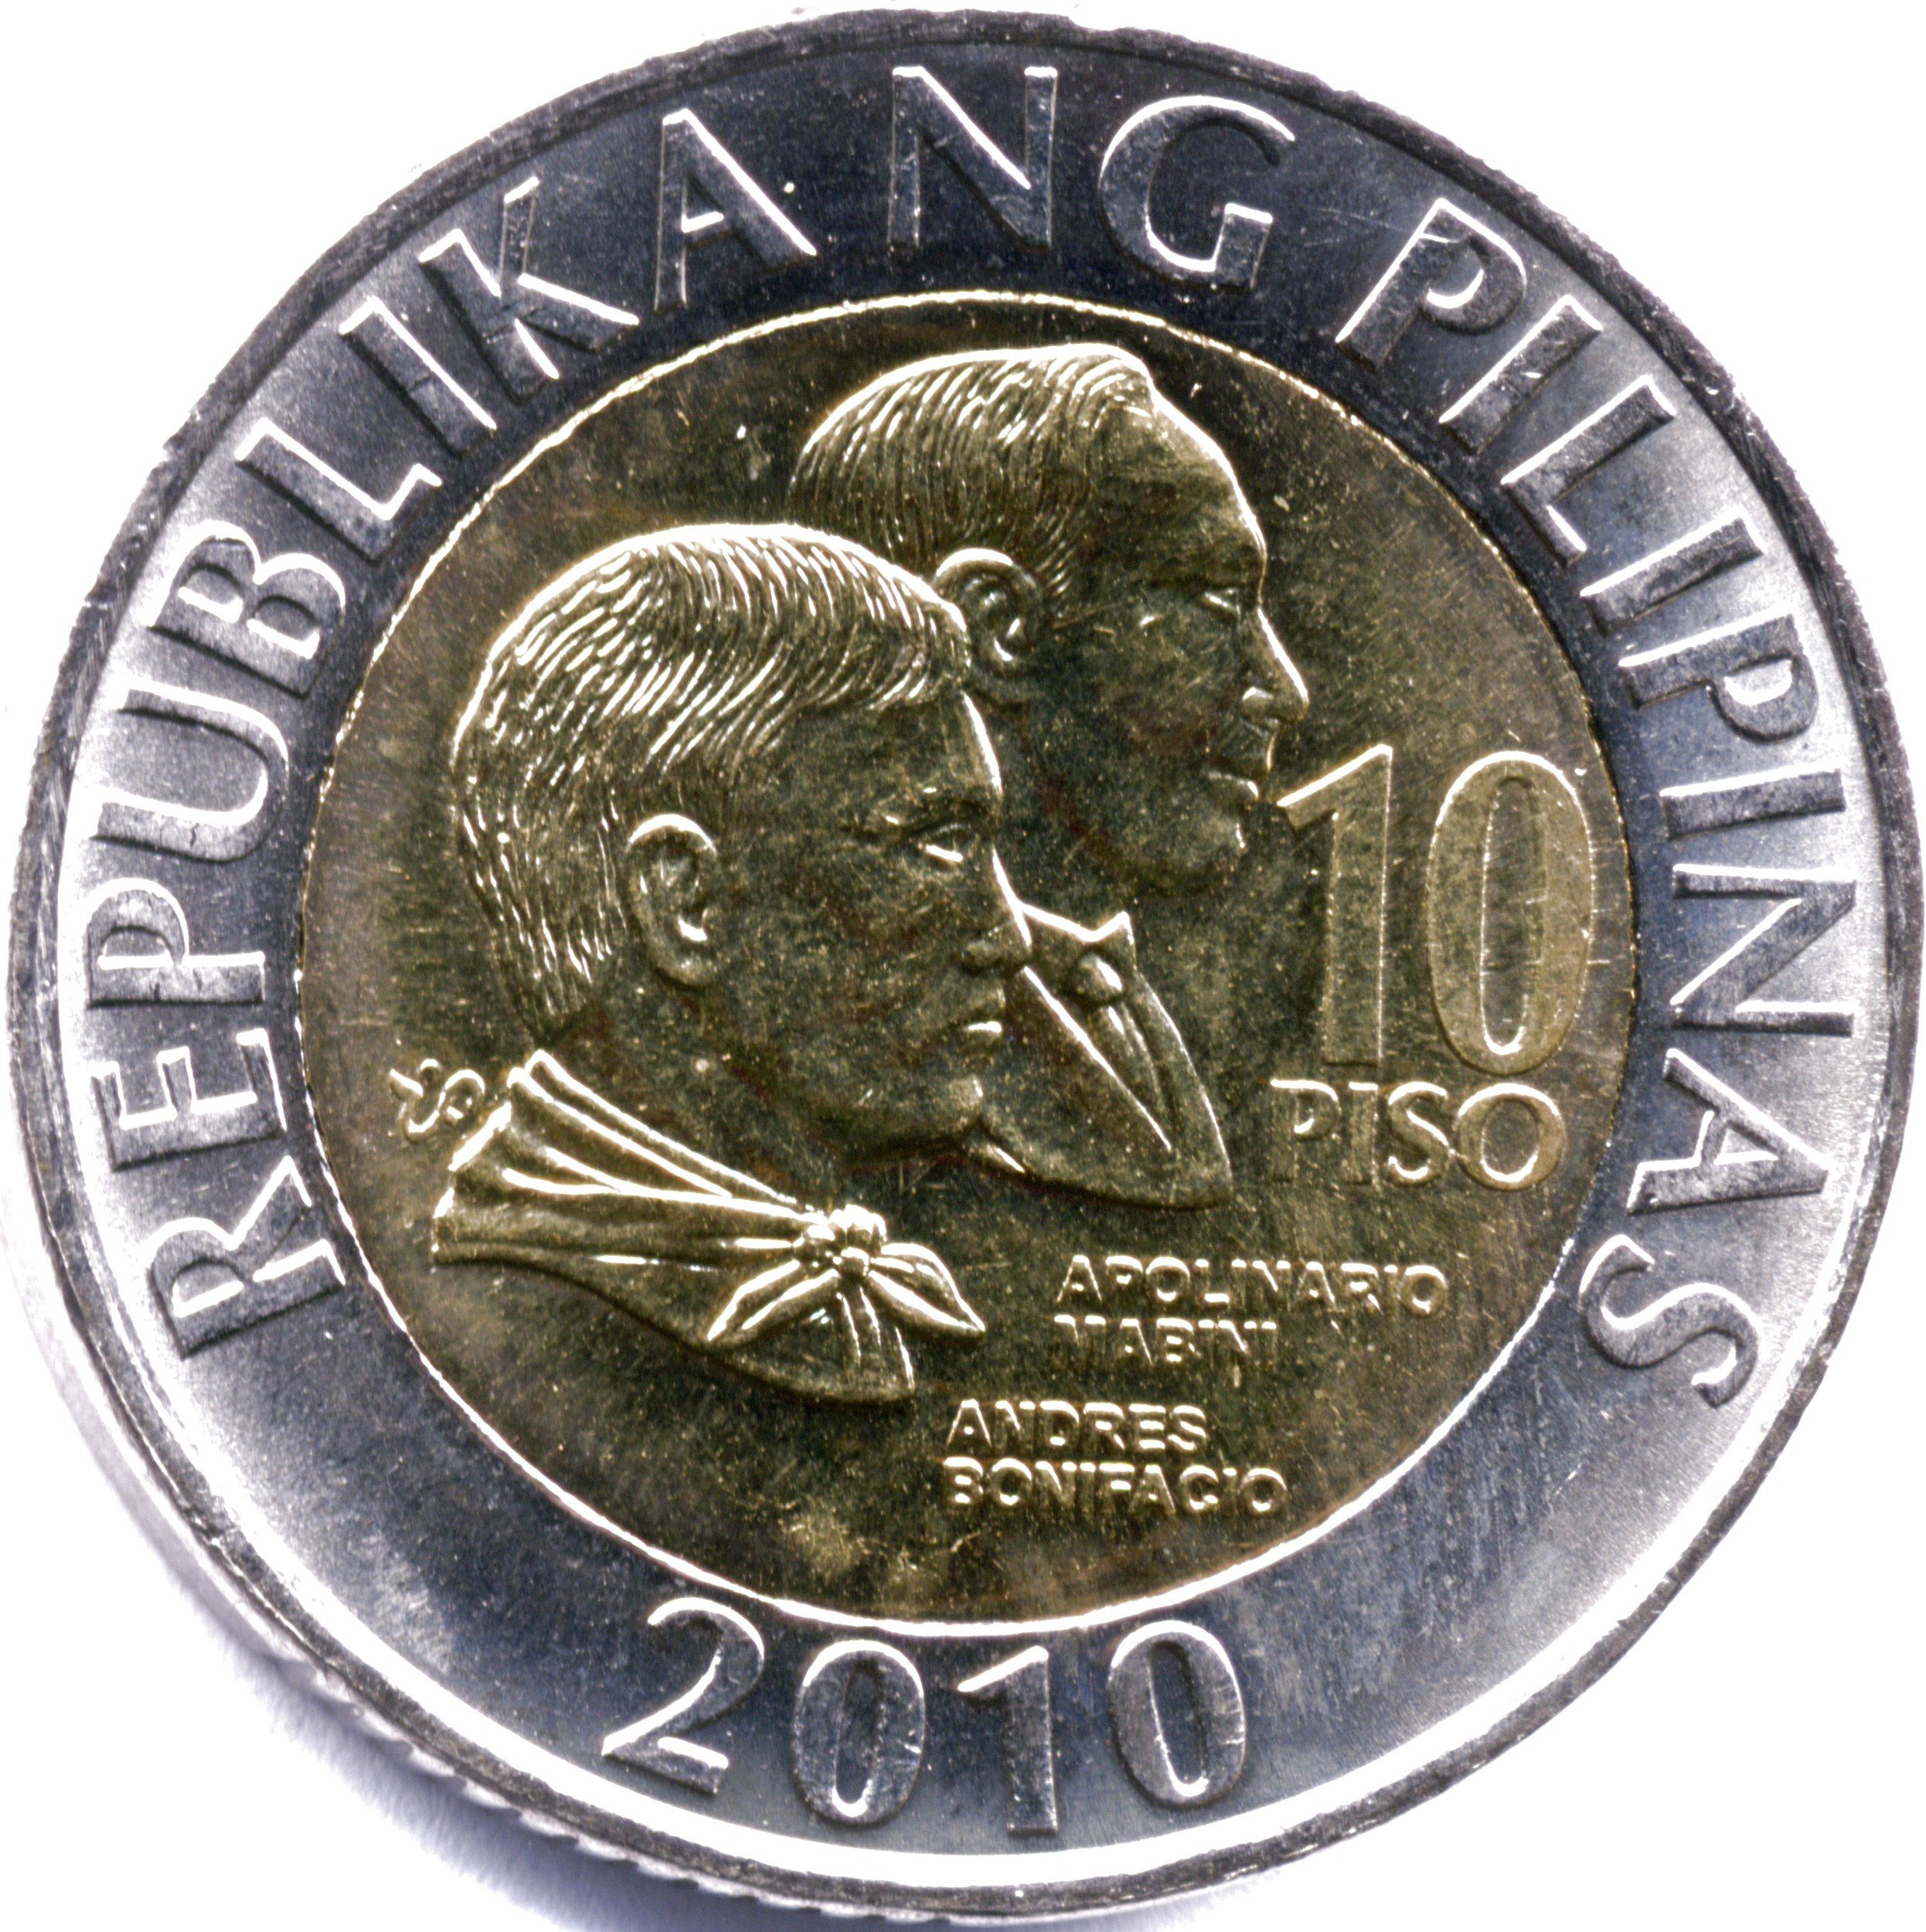 who is on the 10 peso coin